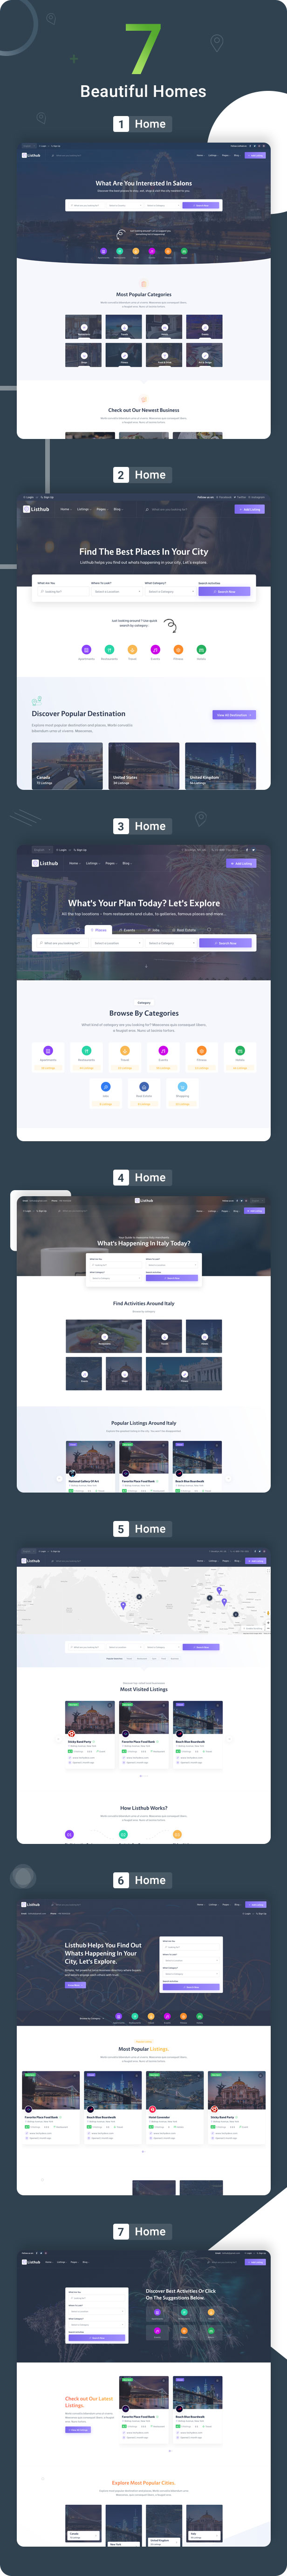 Listhub -Directory & Listing HTML Template with Dashboard - 3